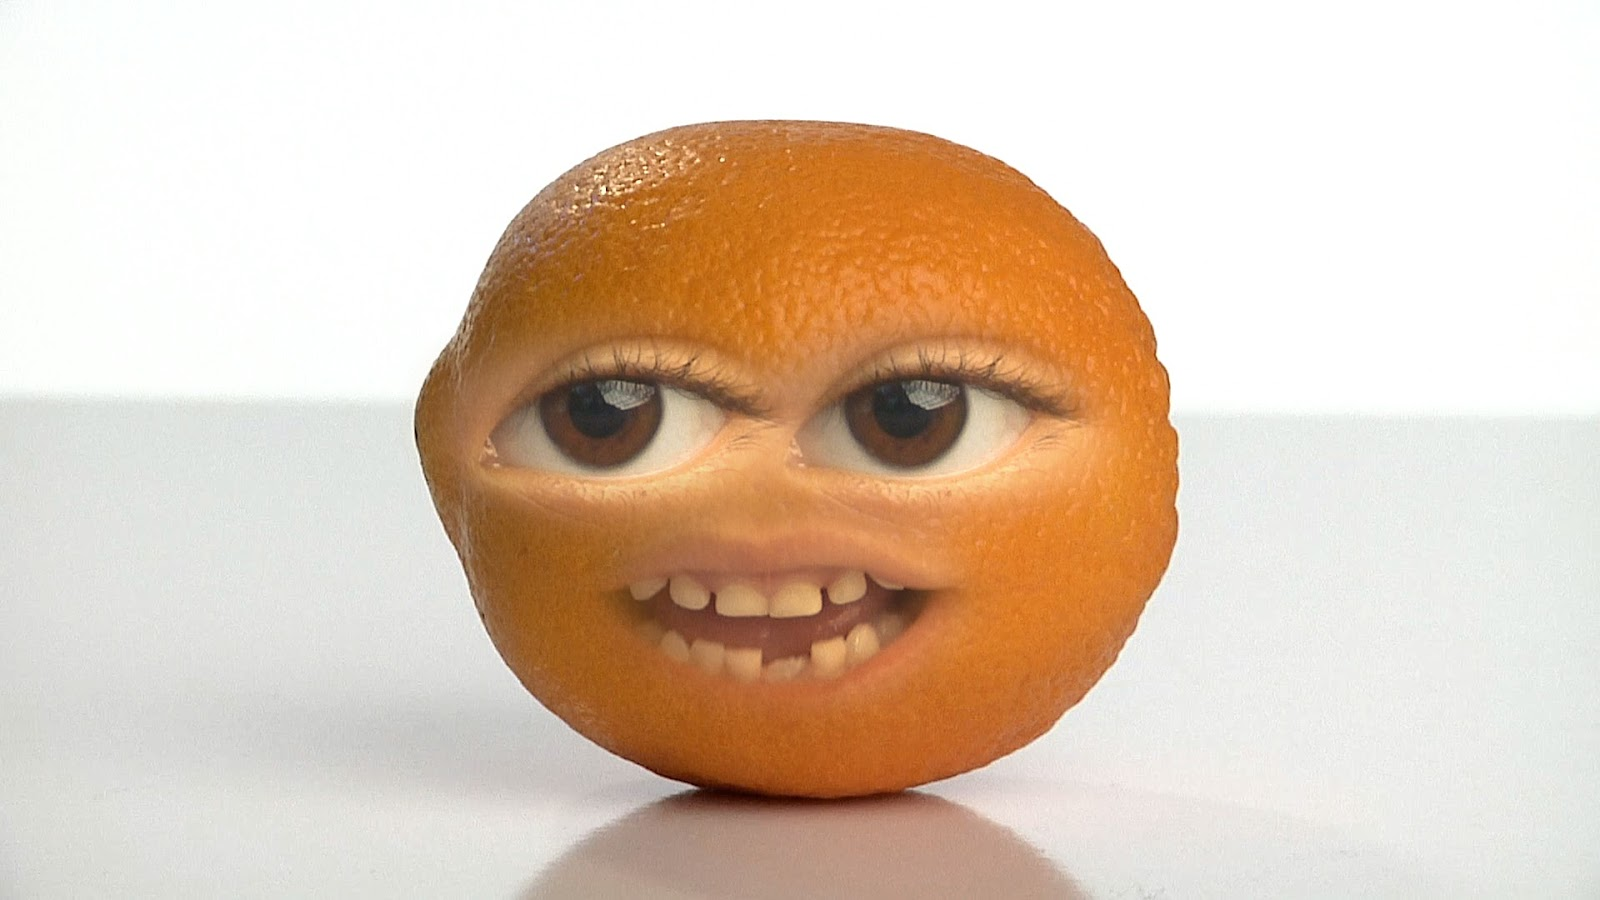 Hd Tube Evantubehd Evan 39s Little Annoying Orange Debut